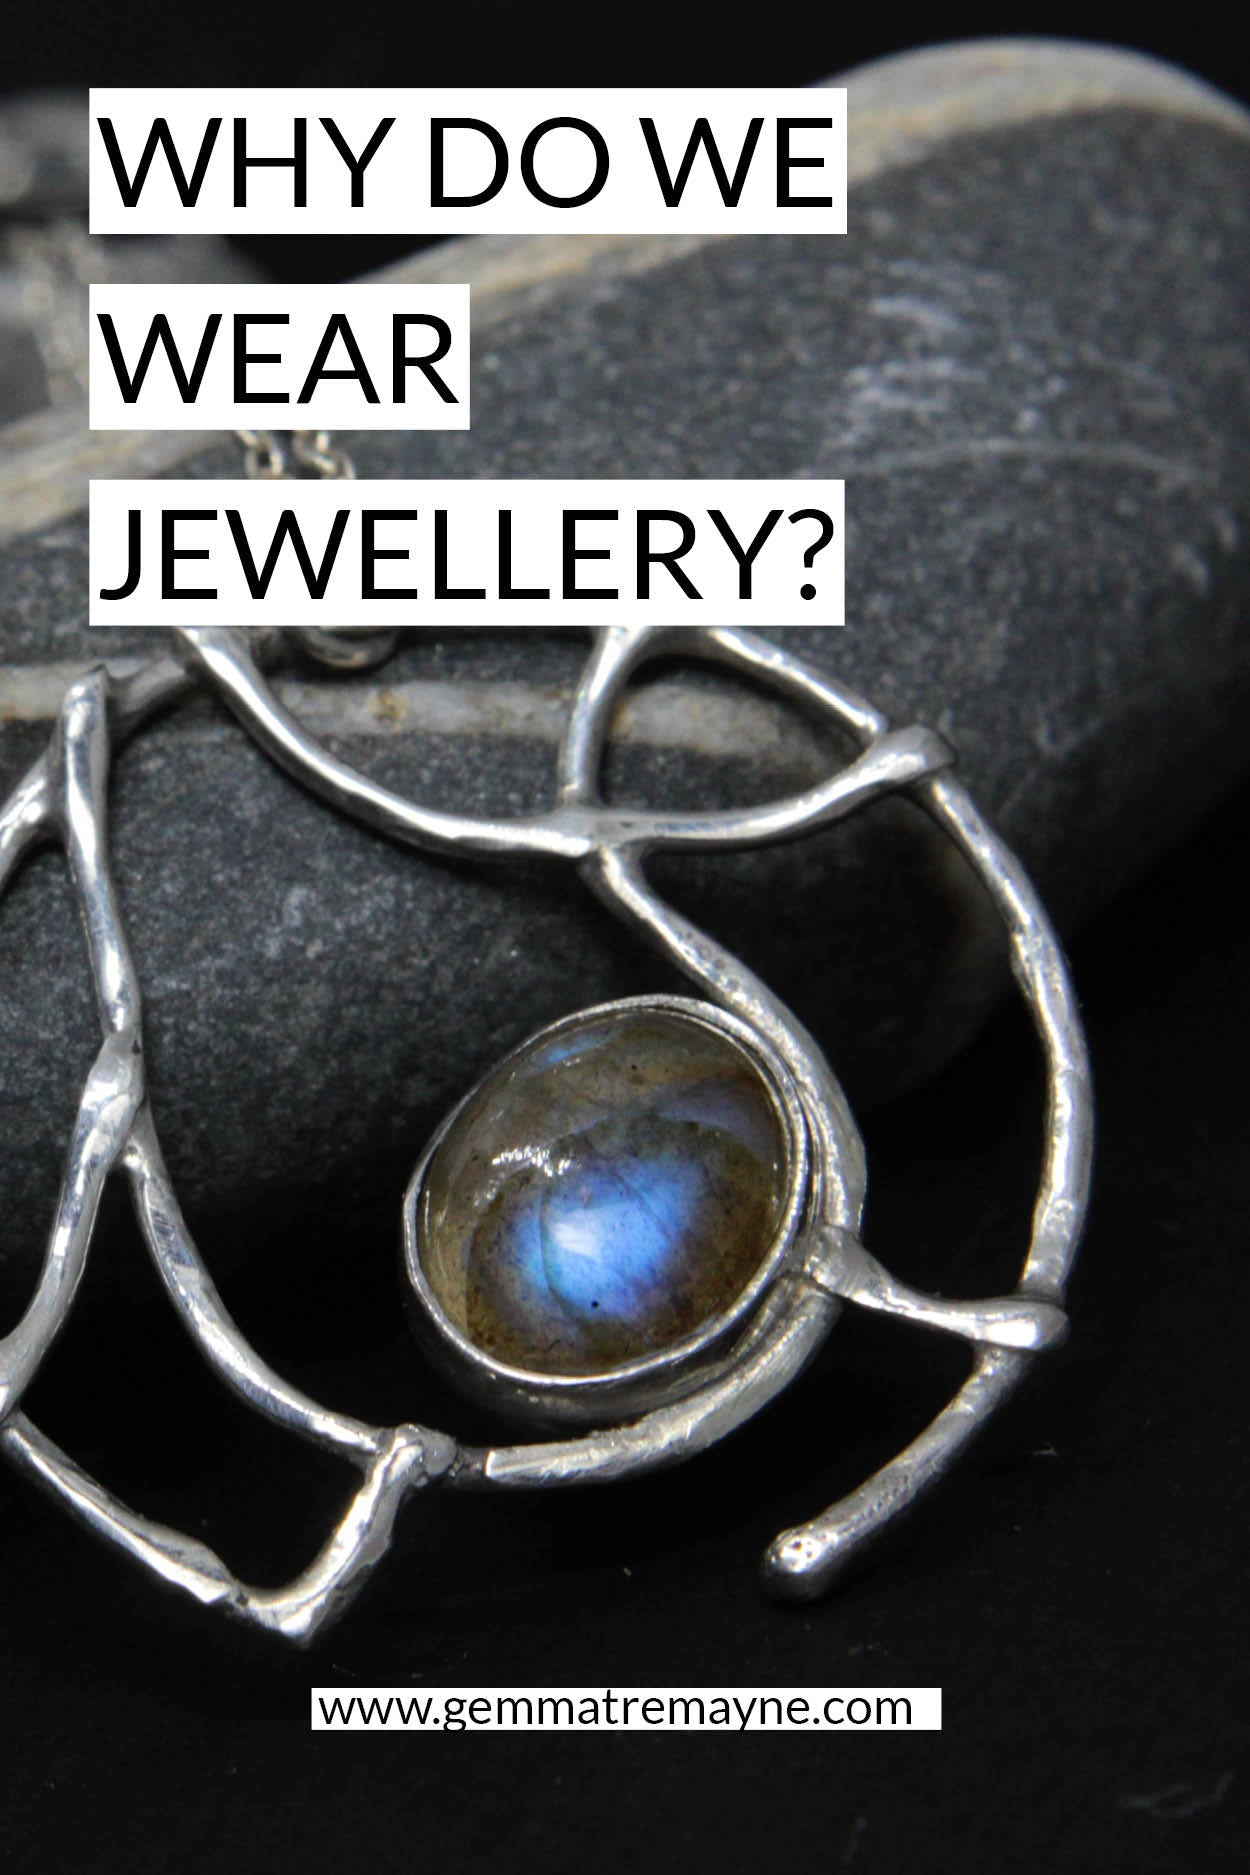 Why Do We Wear Jewellery?